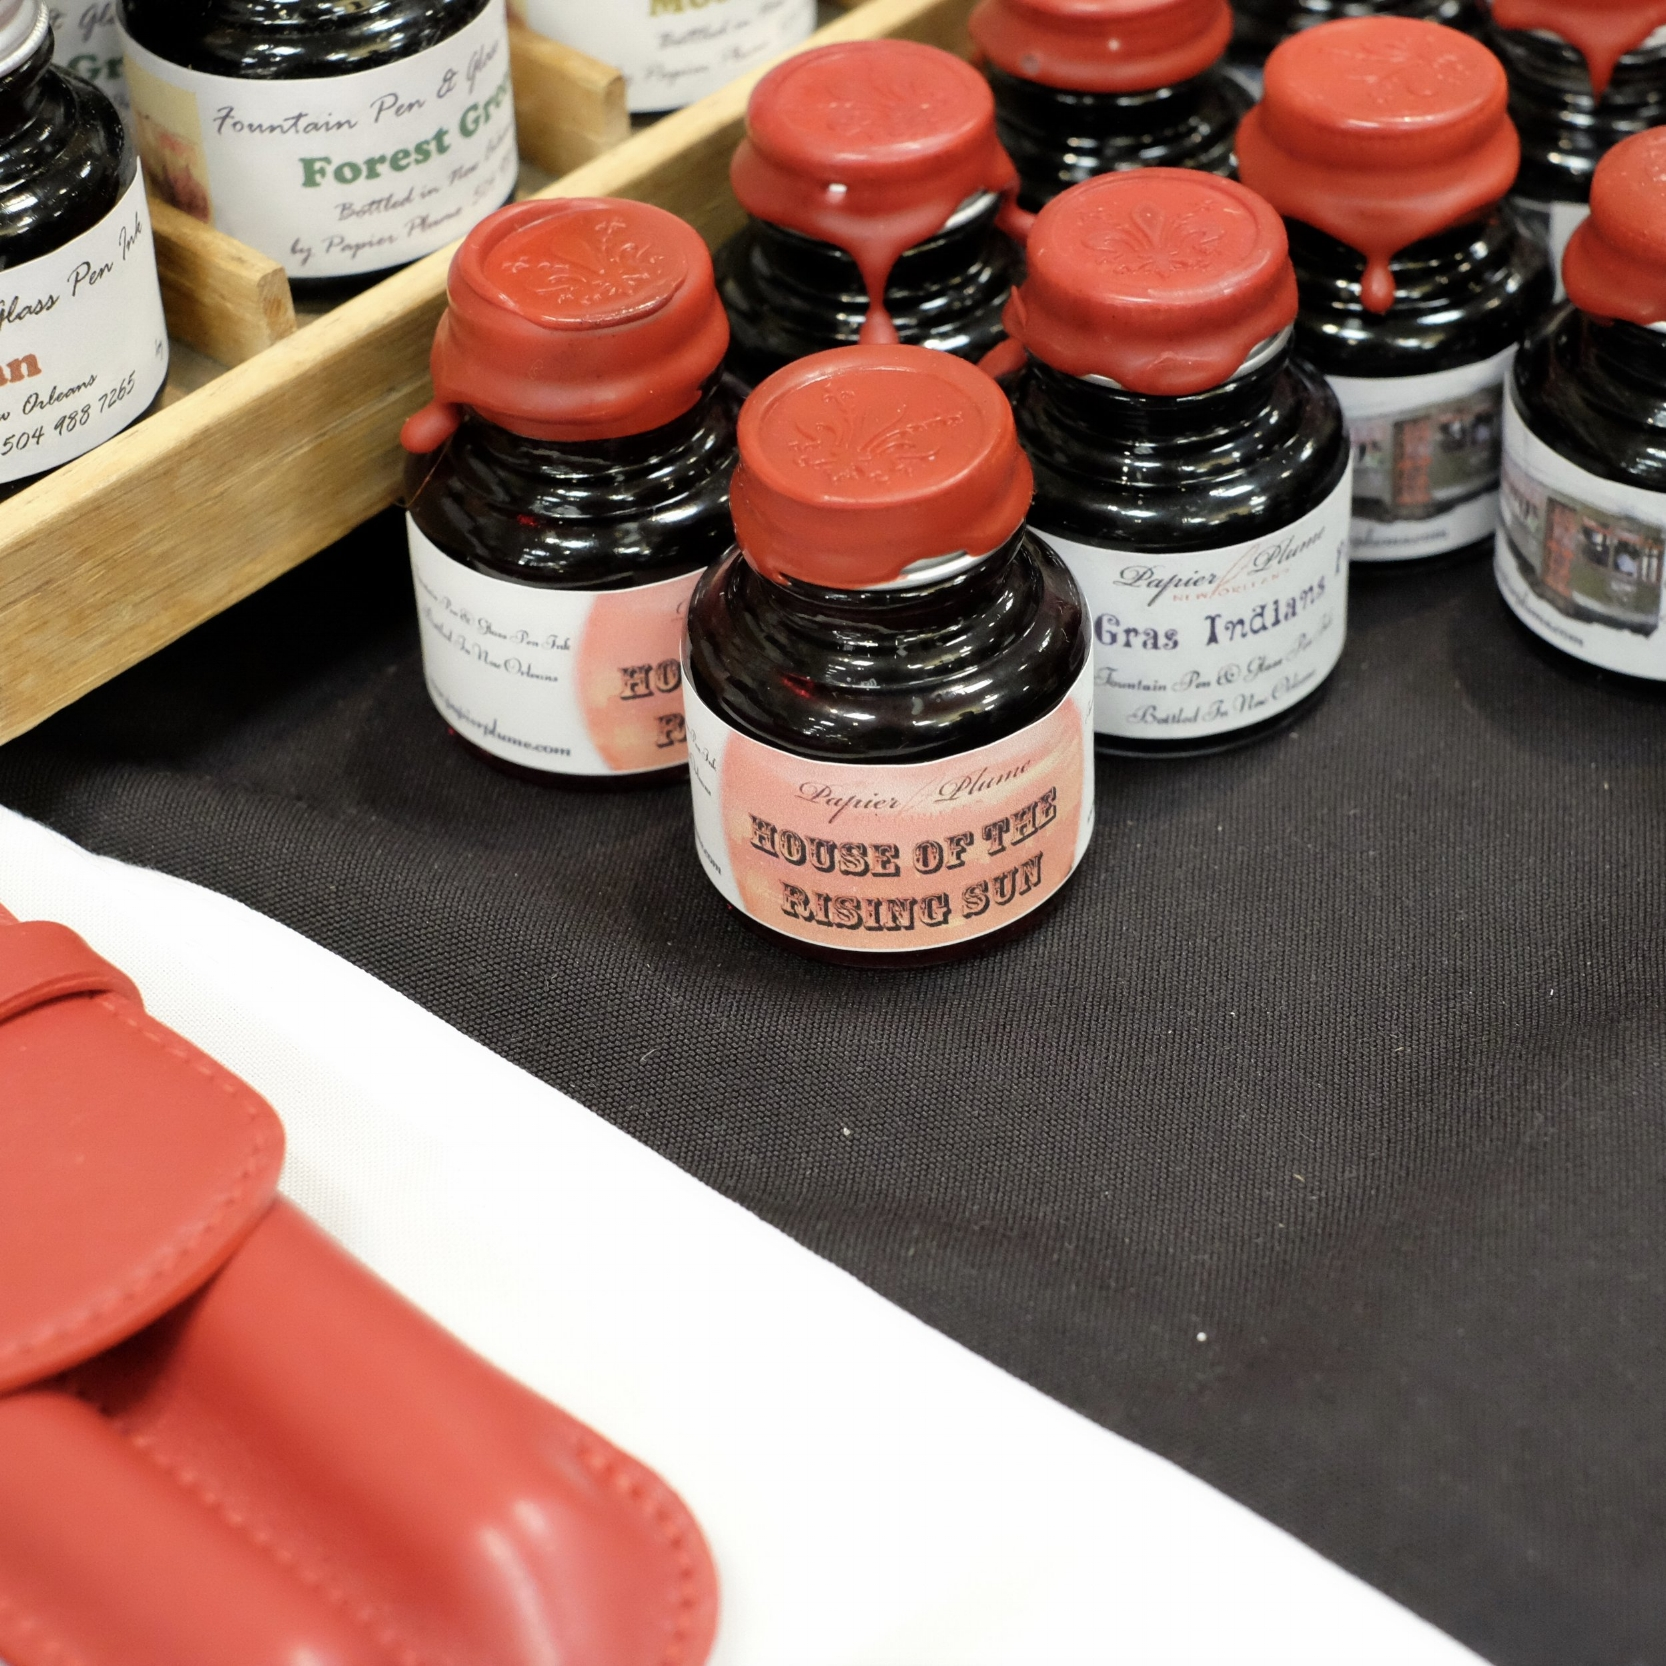 Papier Plume Ink is now available at Vanness!